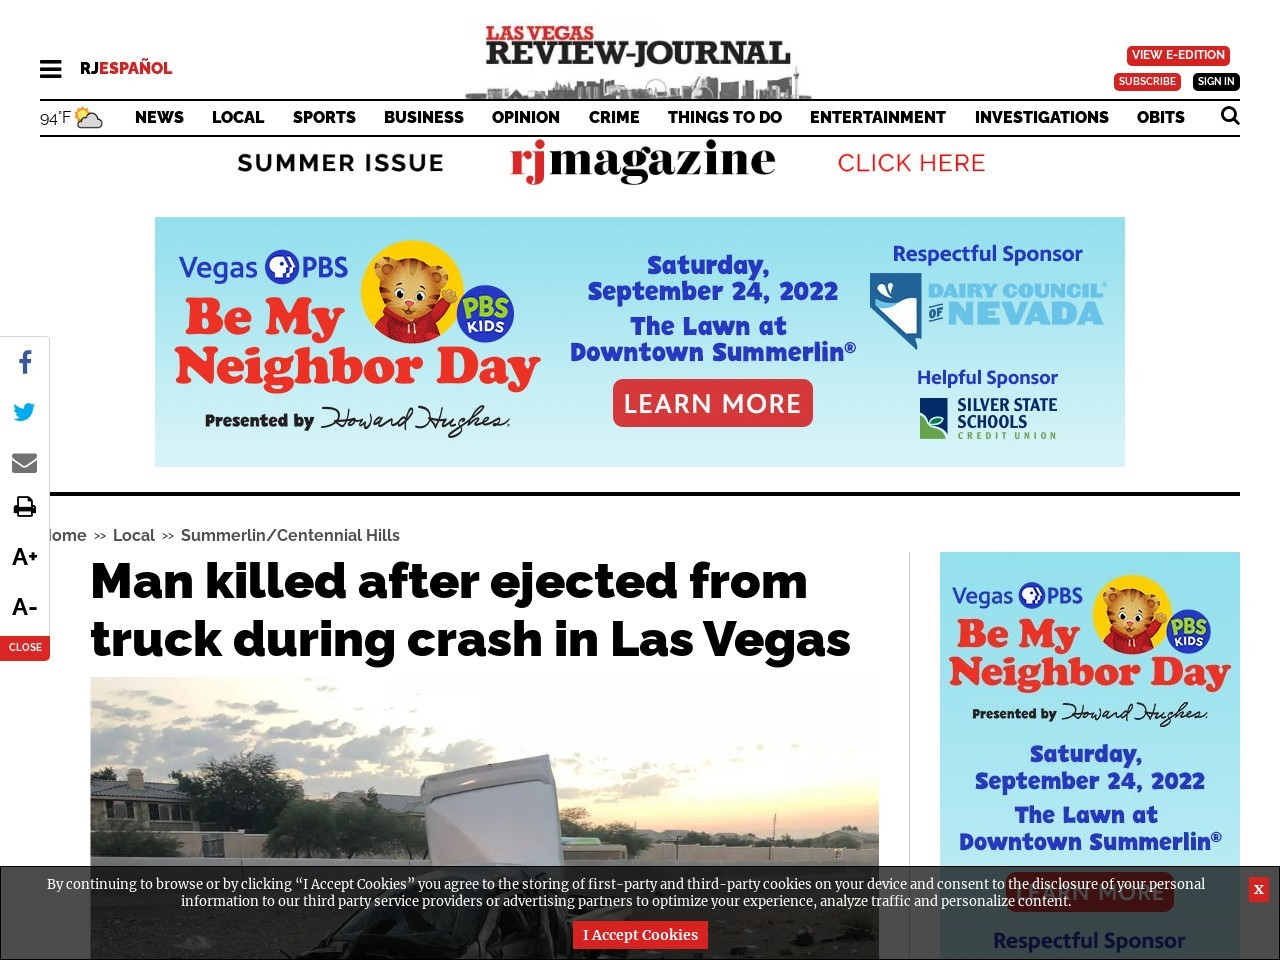 Man killed after ejected from car during crash in Las Vegas